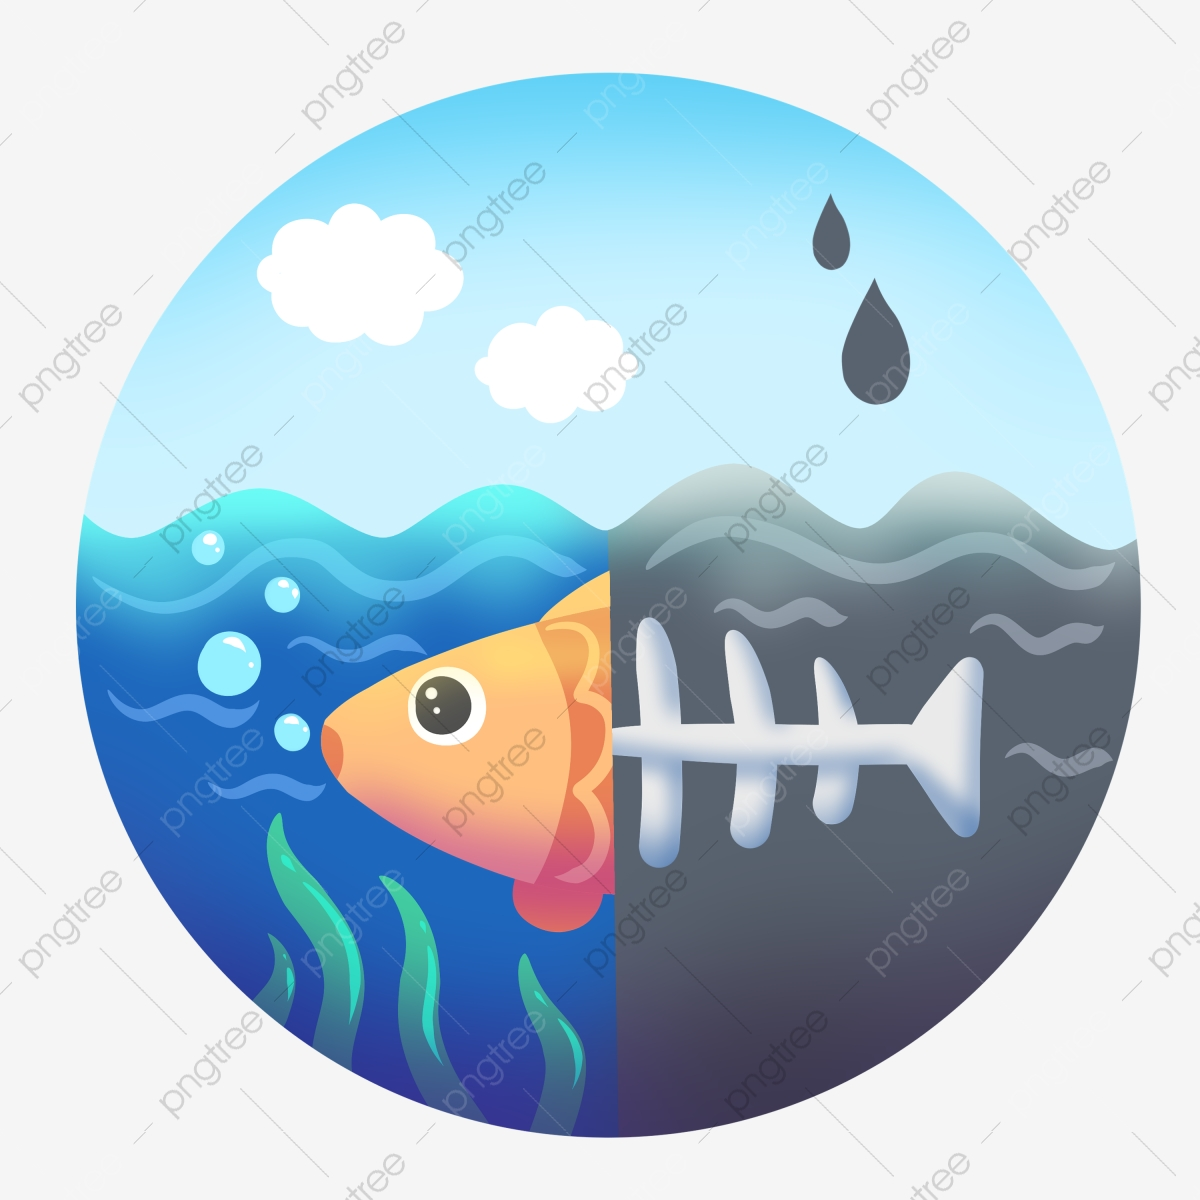 Cartoon Illustration Of Water Pollution Water Pollution Illustration Environmental Protection Illustration Cartoon Illustration Png Transparent Clipart Image And Psd File For Free Download